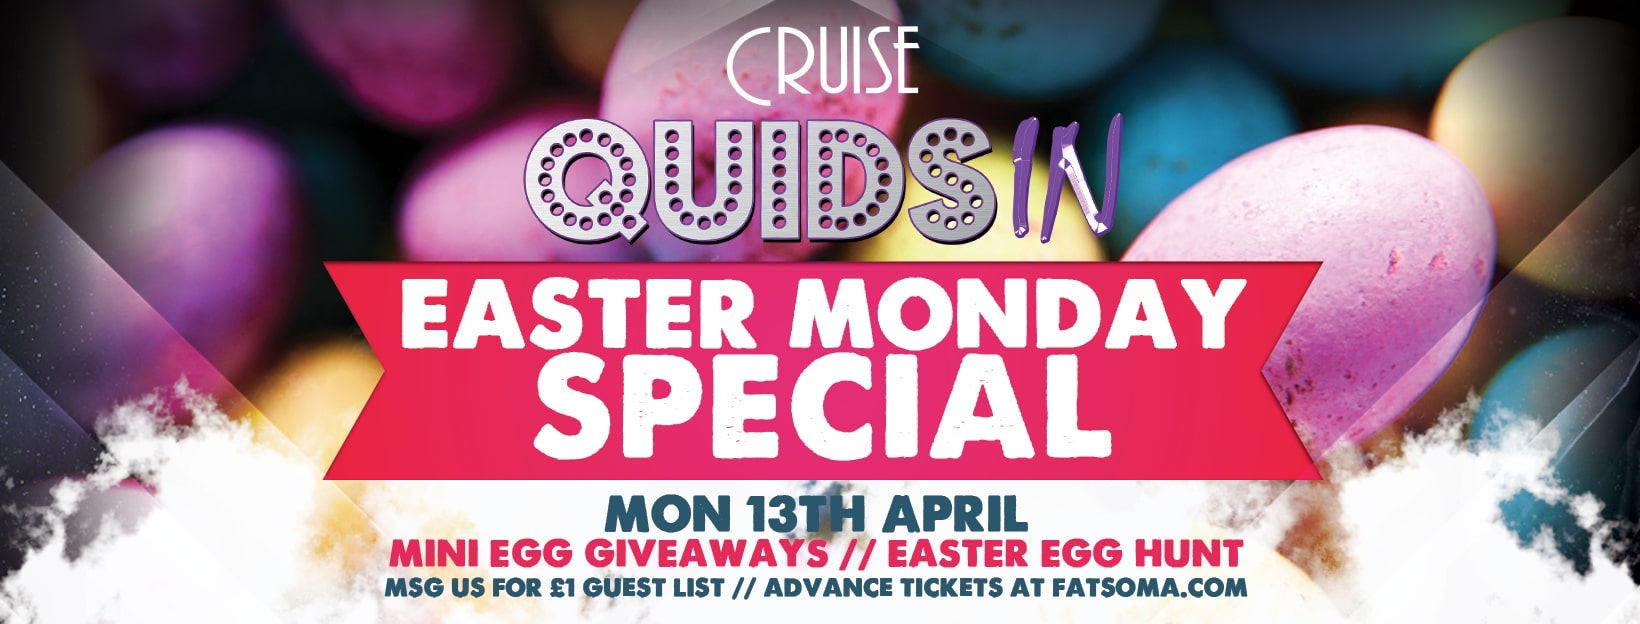 Quids In Chester – Easter Monday Special